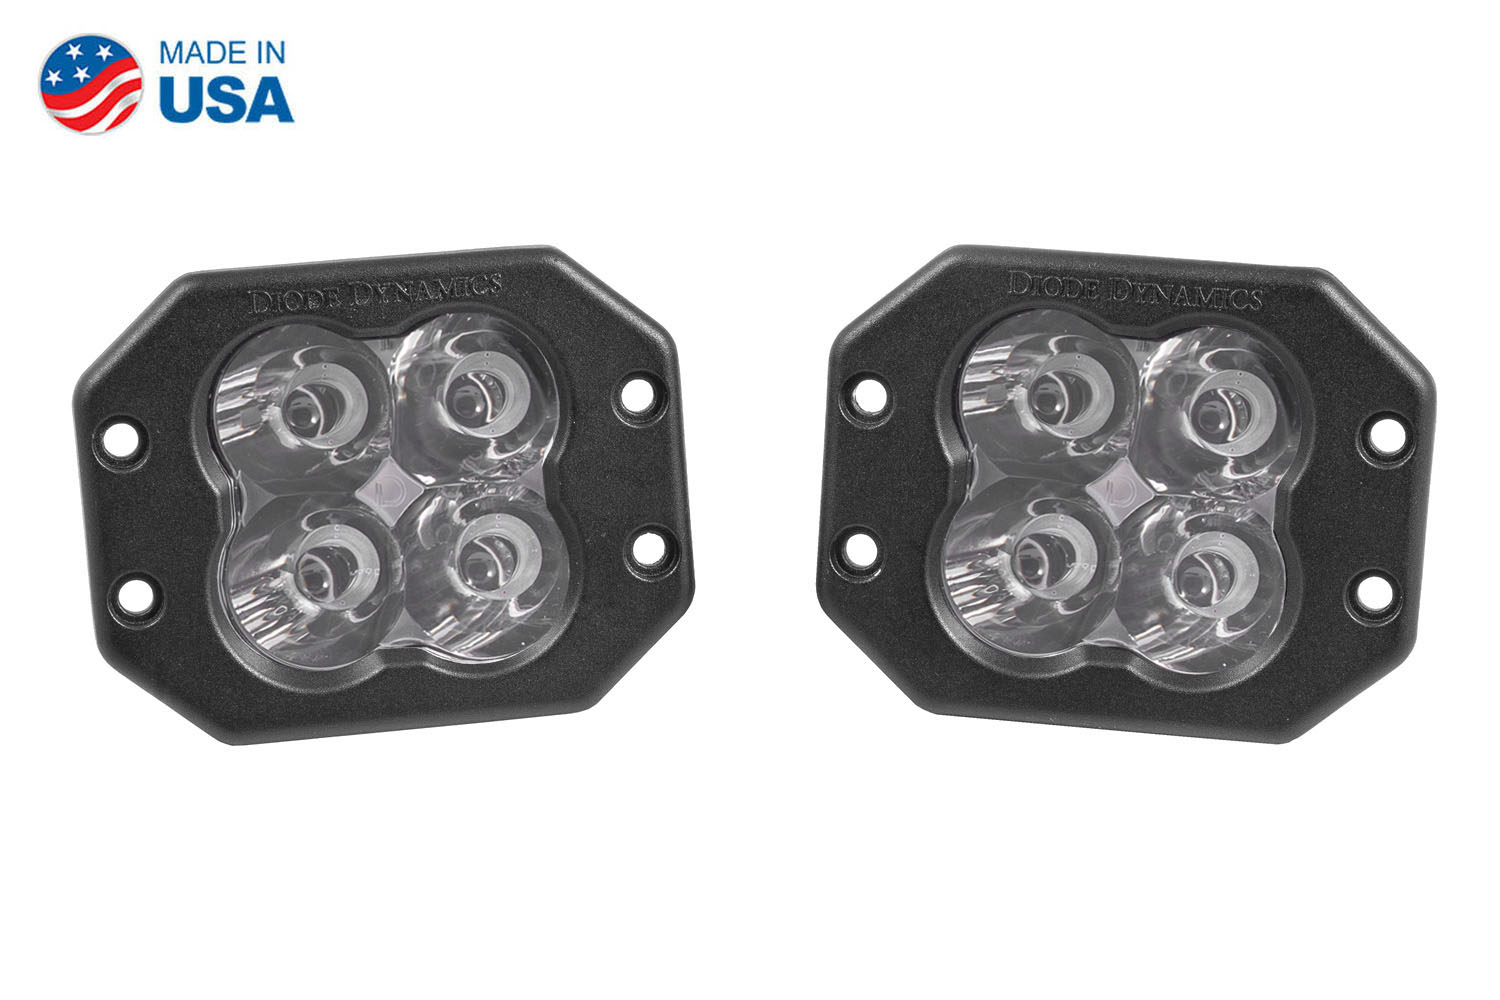 Diode Dynamics Worklight SS3 Sport White Spot Flush (pair)